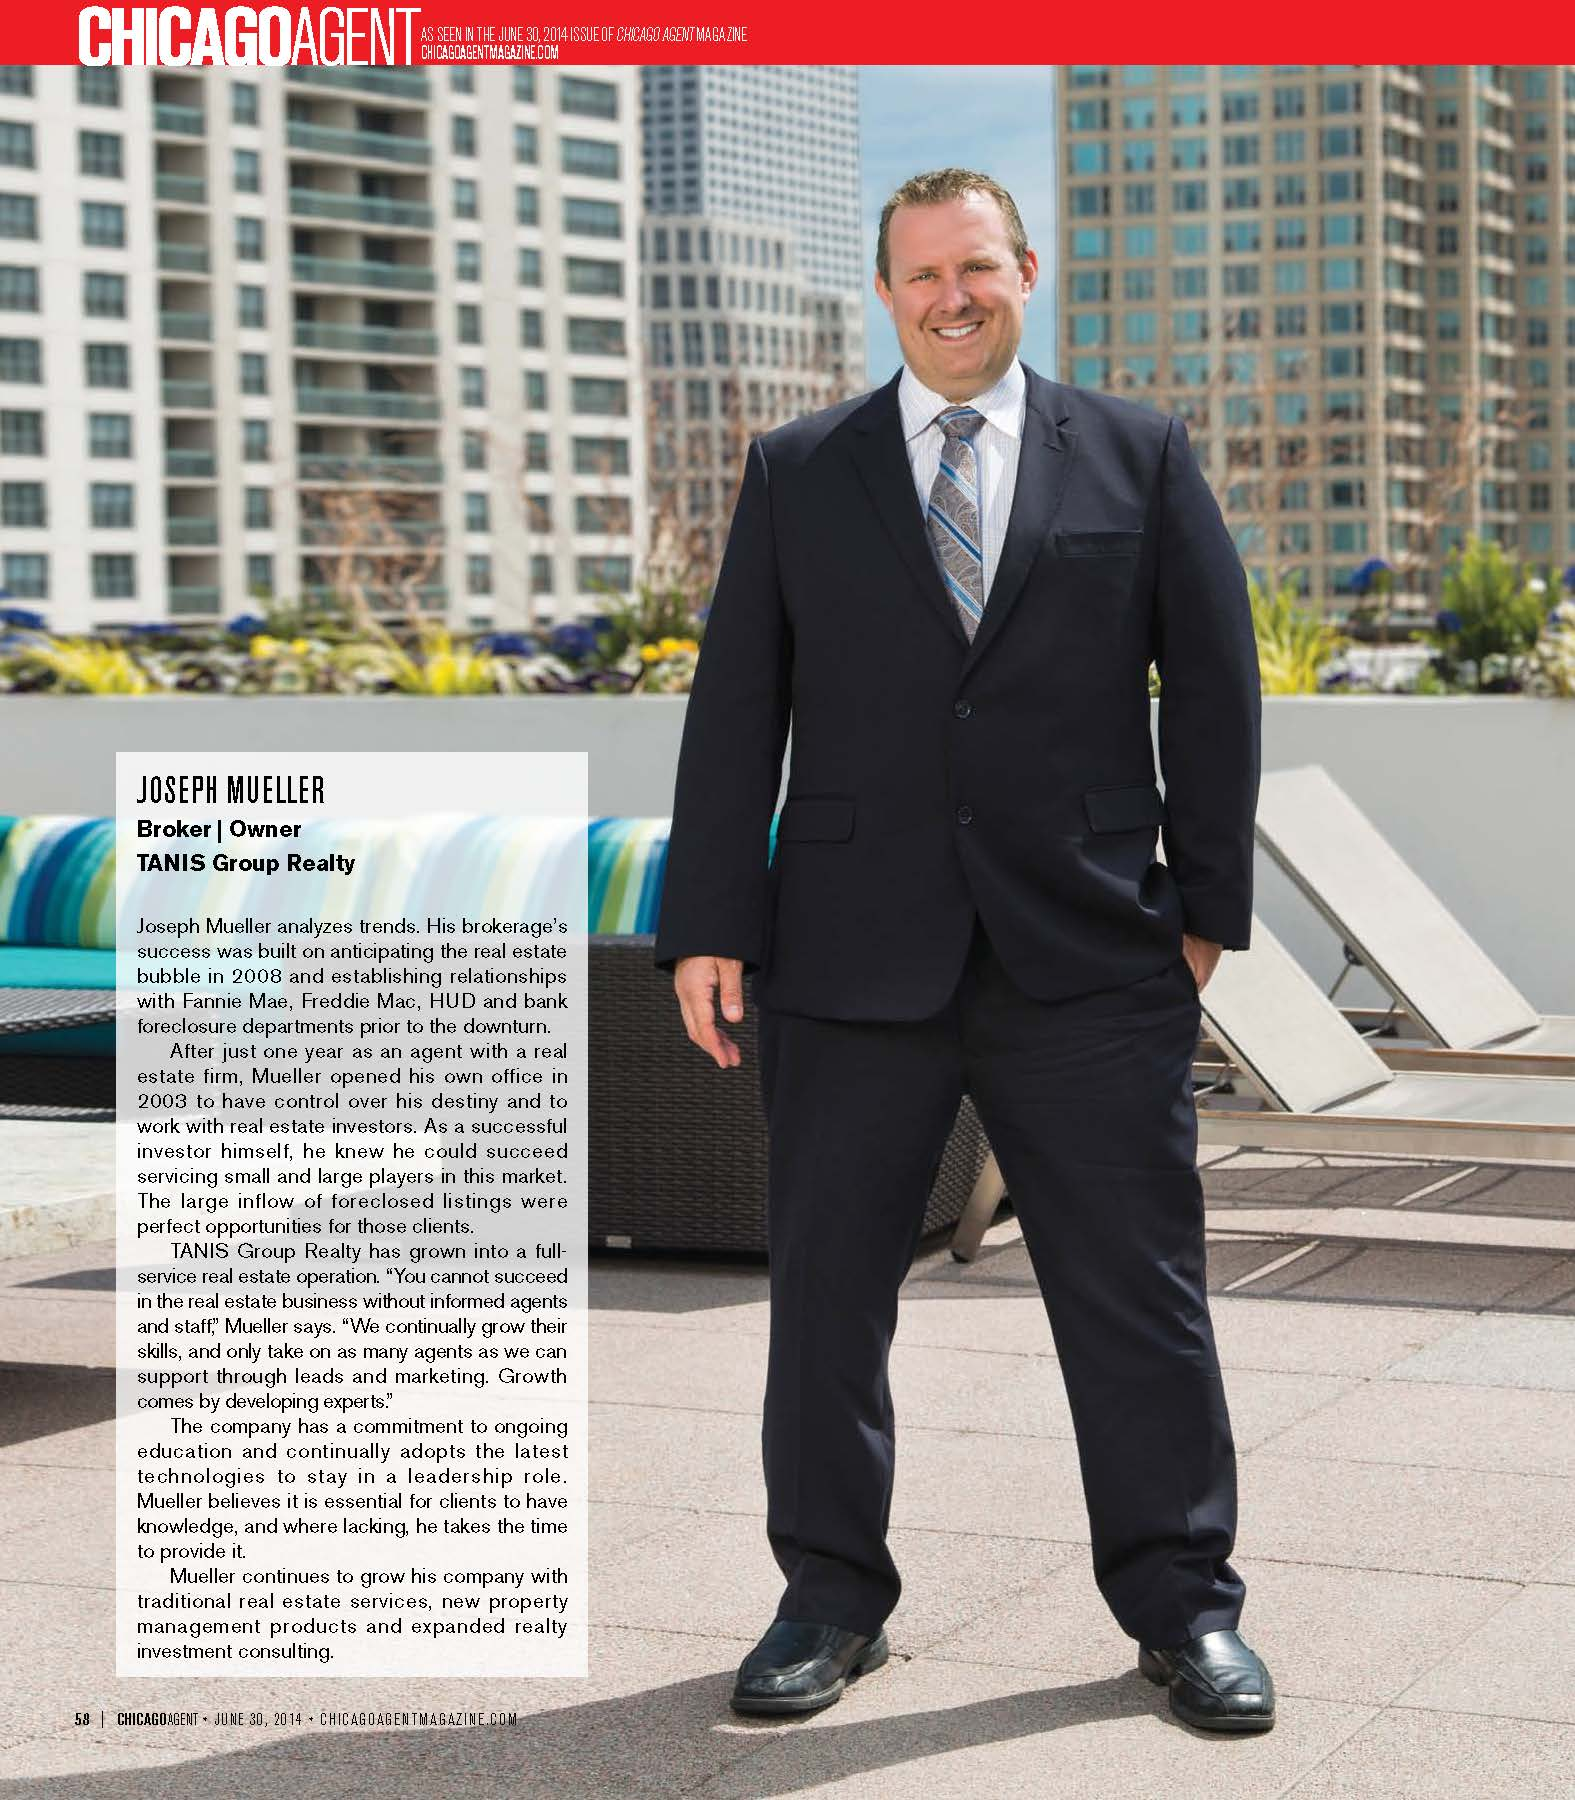 Joesph Mueller, Tanis Group Realty Featured Broker in Chicago Agent Magazine's Who's Who list